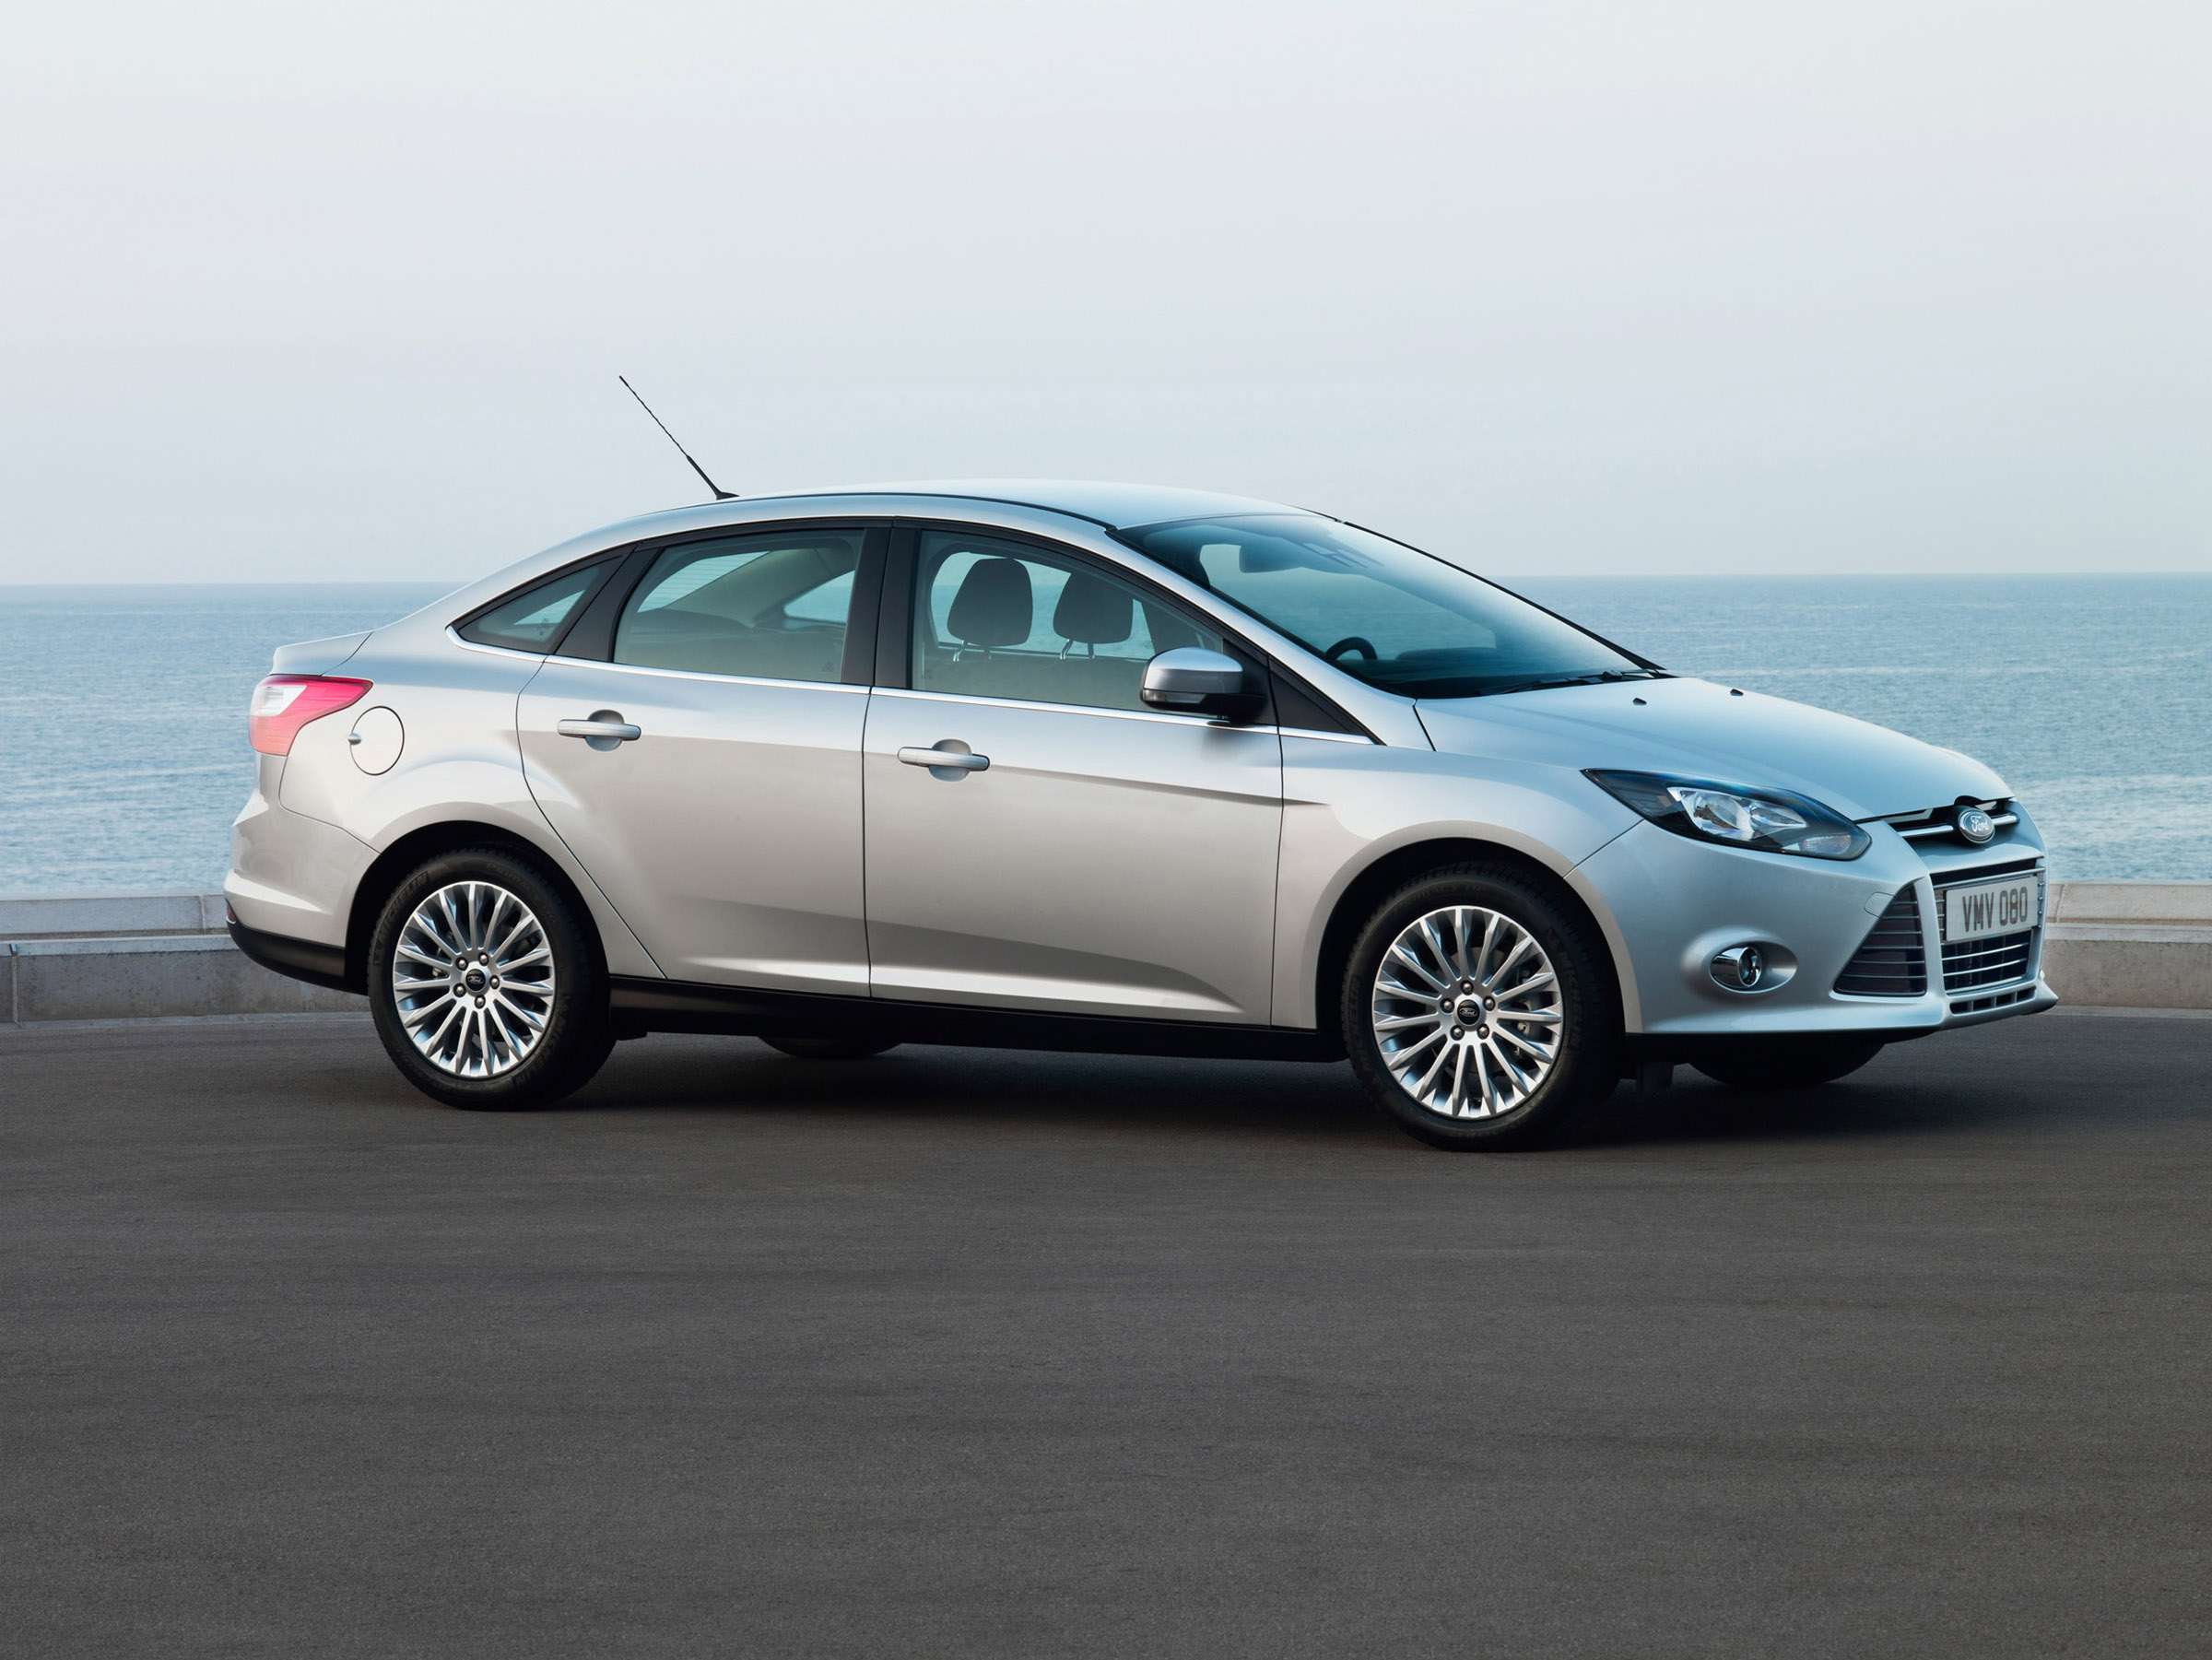 2012 ford focus gets exclusive handling packs. Black Bedroom Furniture Sets. Home Design Ideas